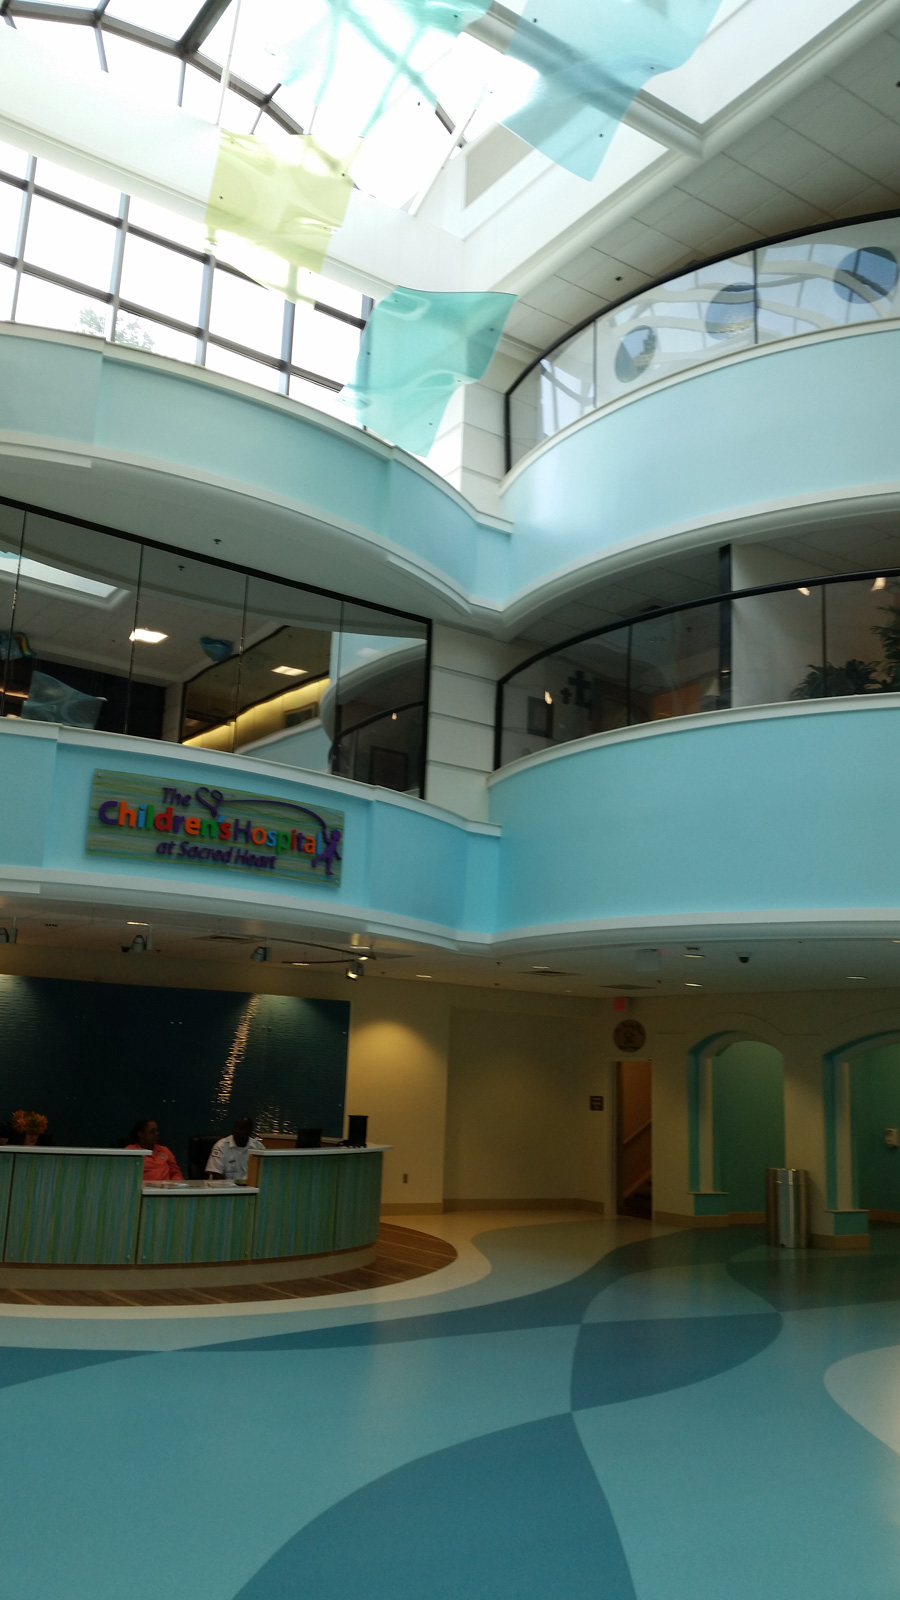 Childrens Hospital Sacred Heart Pensacola Florida interior